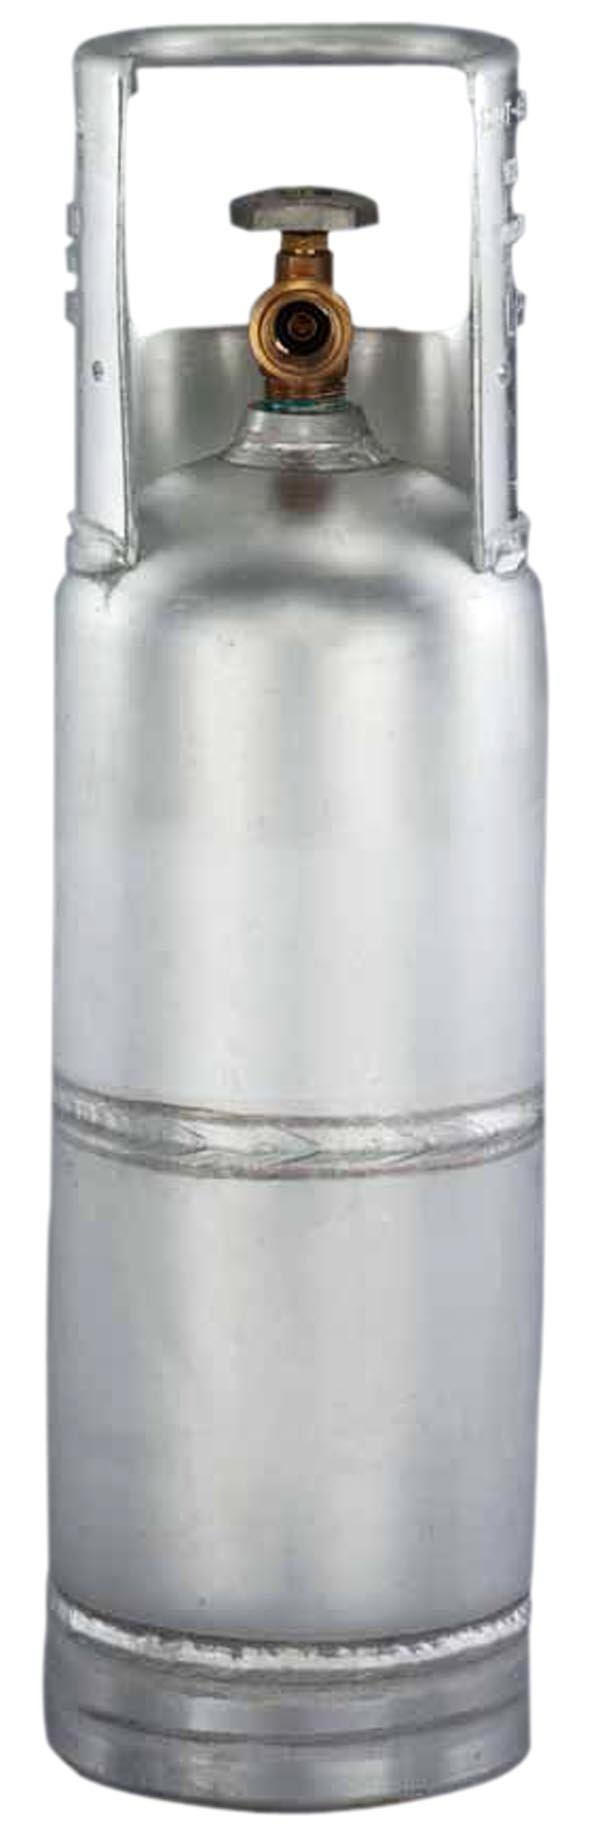 Worthington 299494 6-Pound Aluminum Propane Cylinder With Type 1 With Overflow Prevention Device Valve